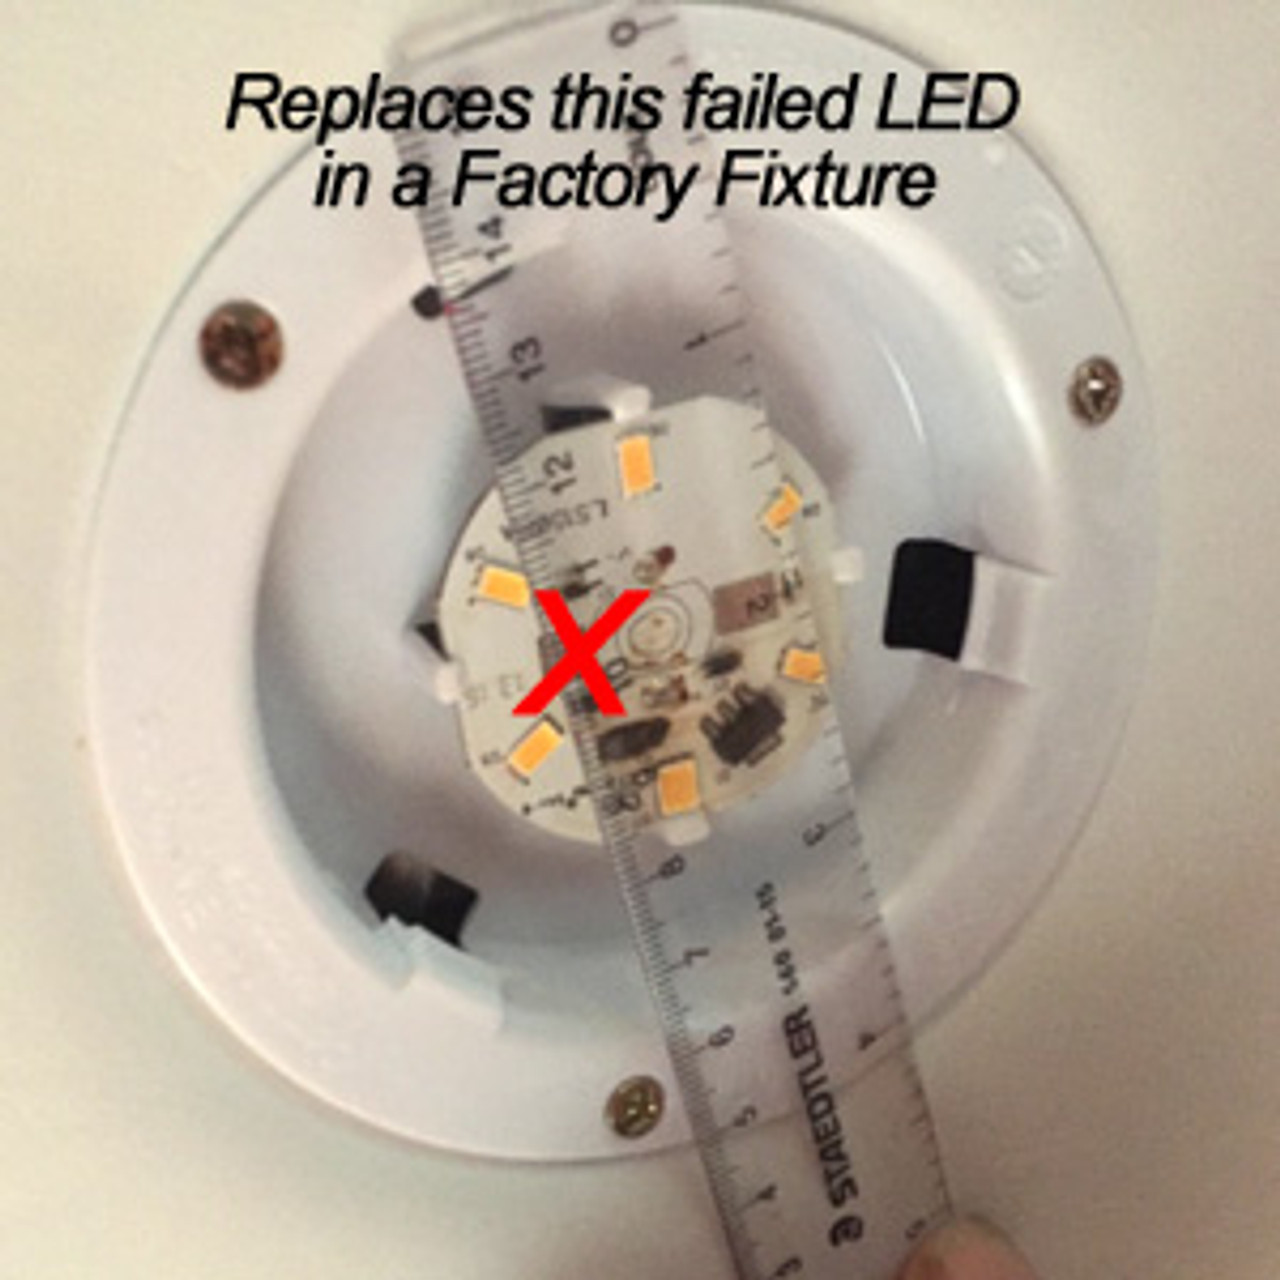 RETROFIT-10-5630-WIRE-CW Replacement for C.E. 57/58 LED Fixture Cool White